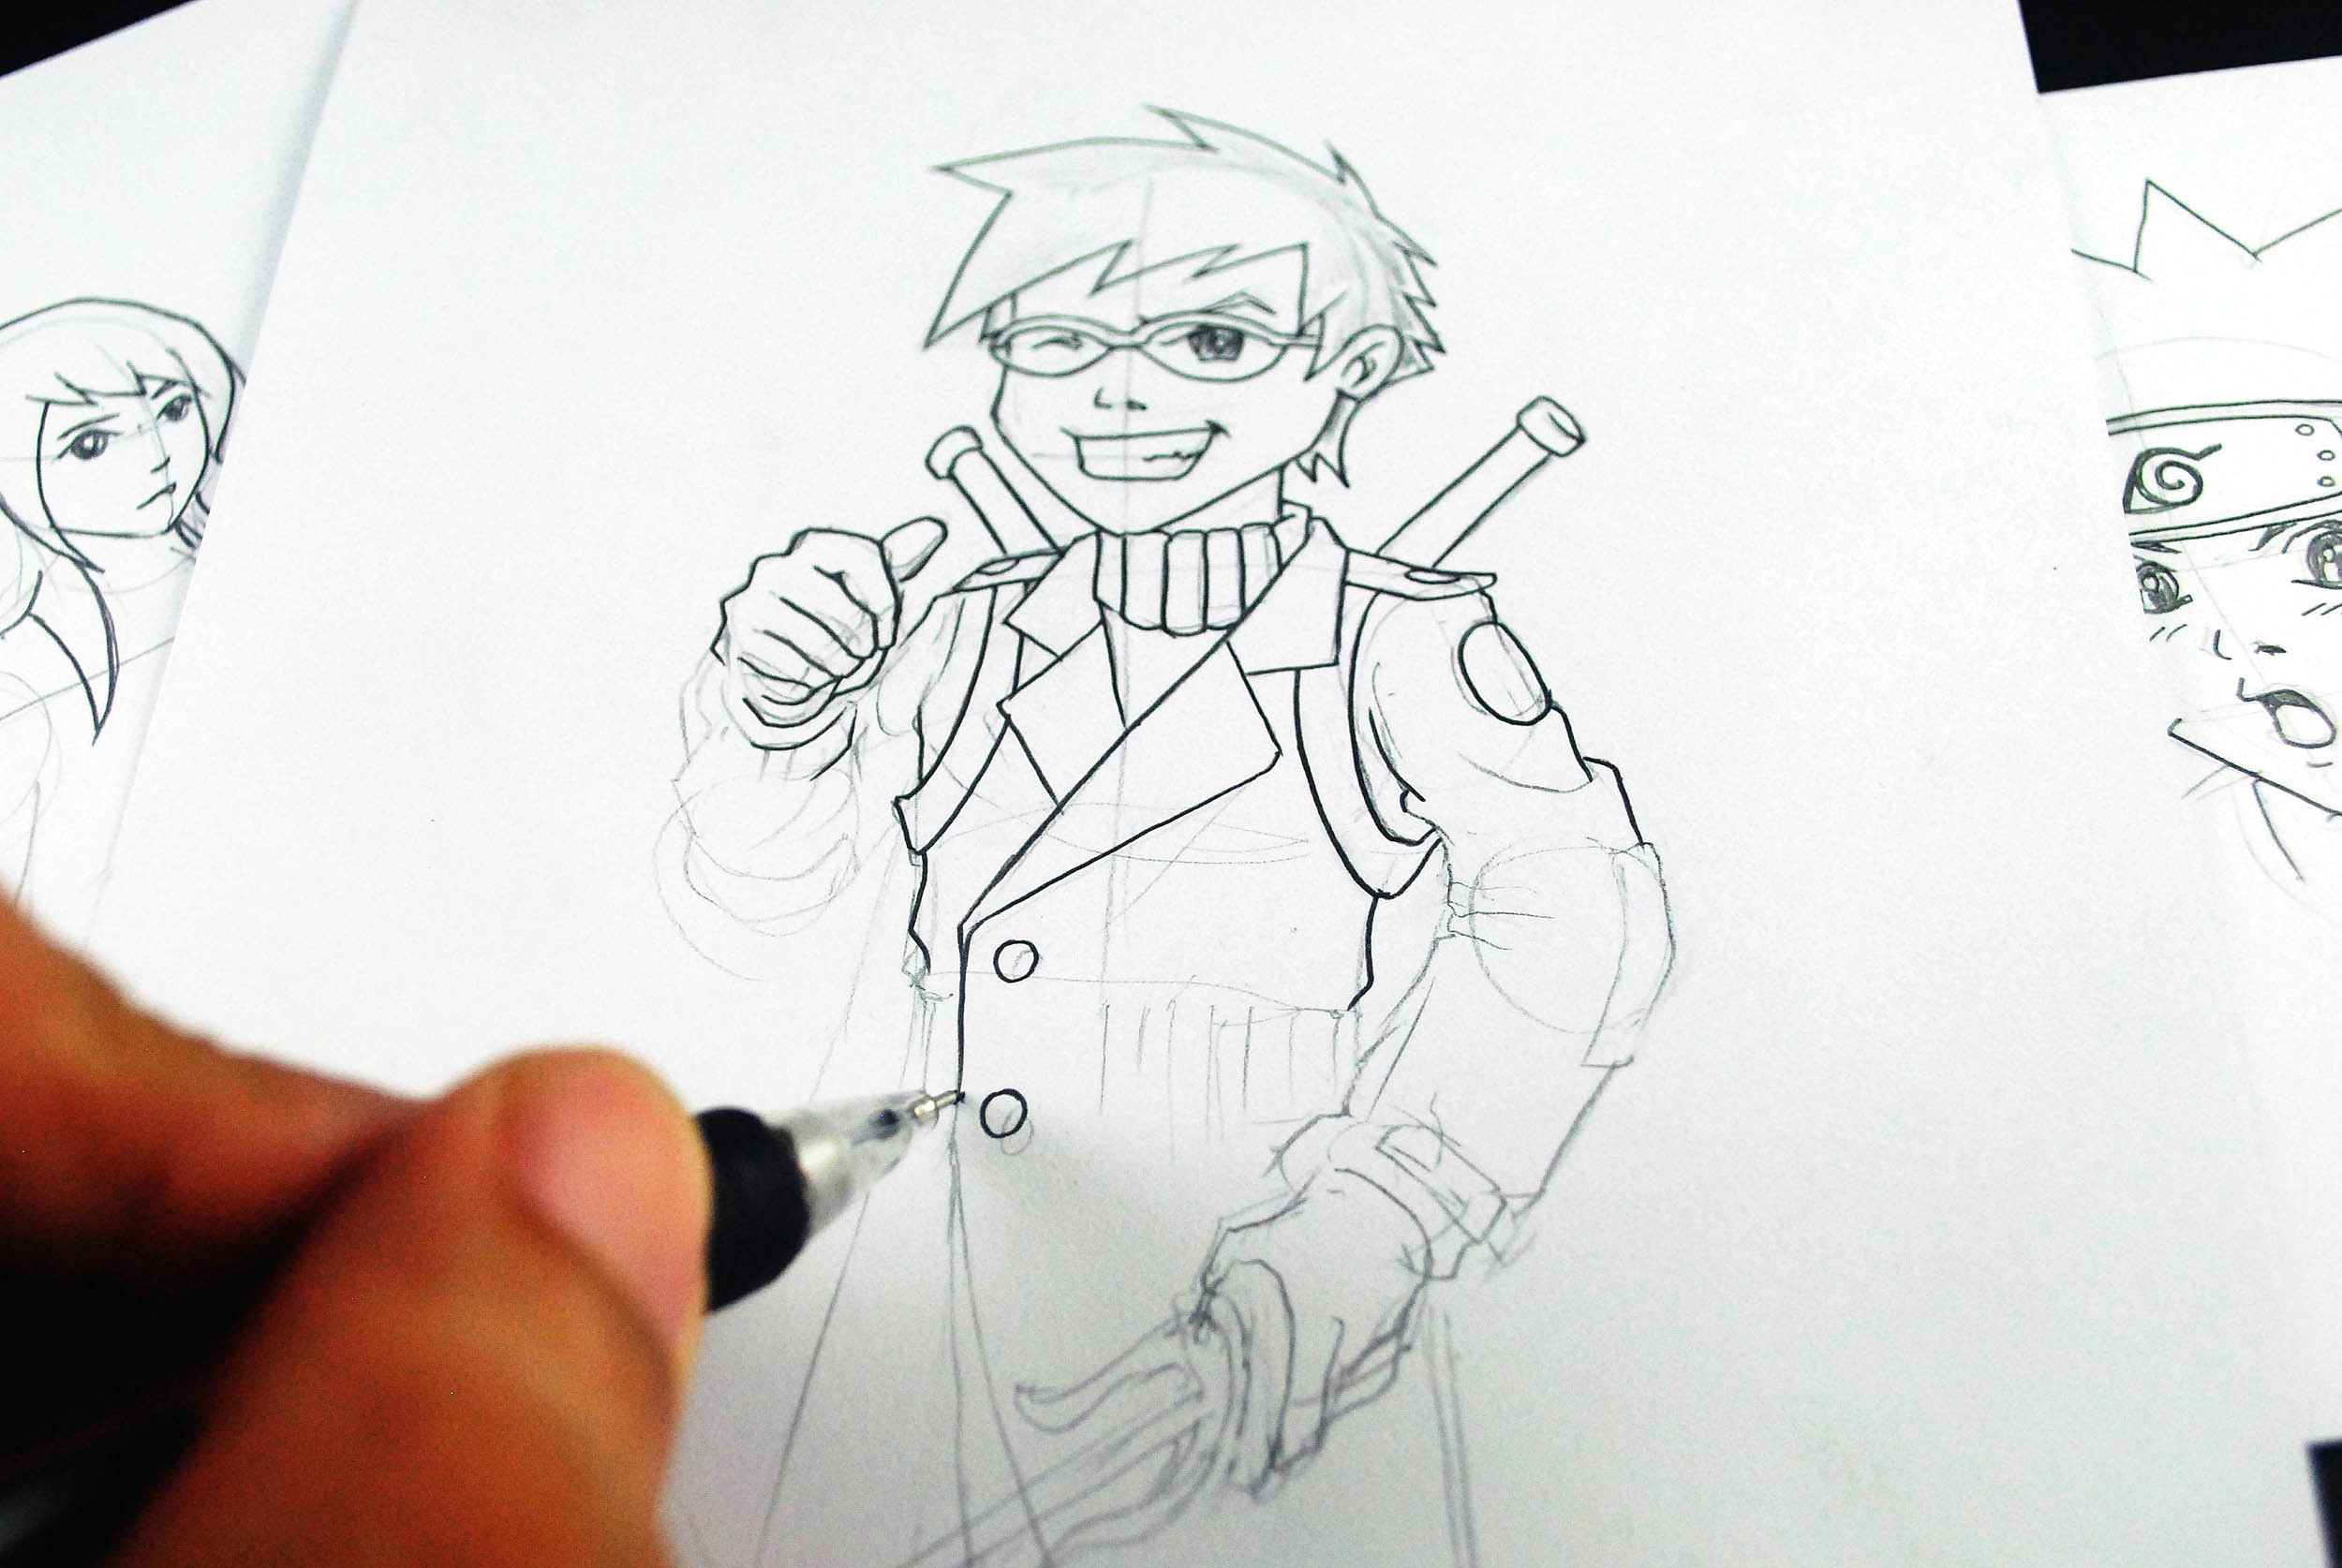 how to learn to draw manga and develop your own style